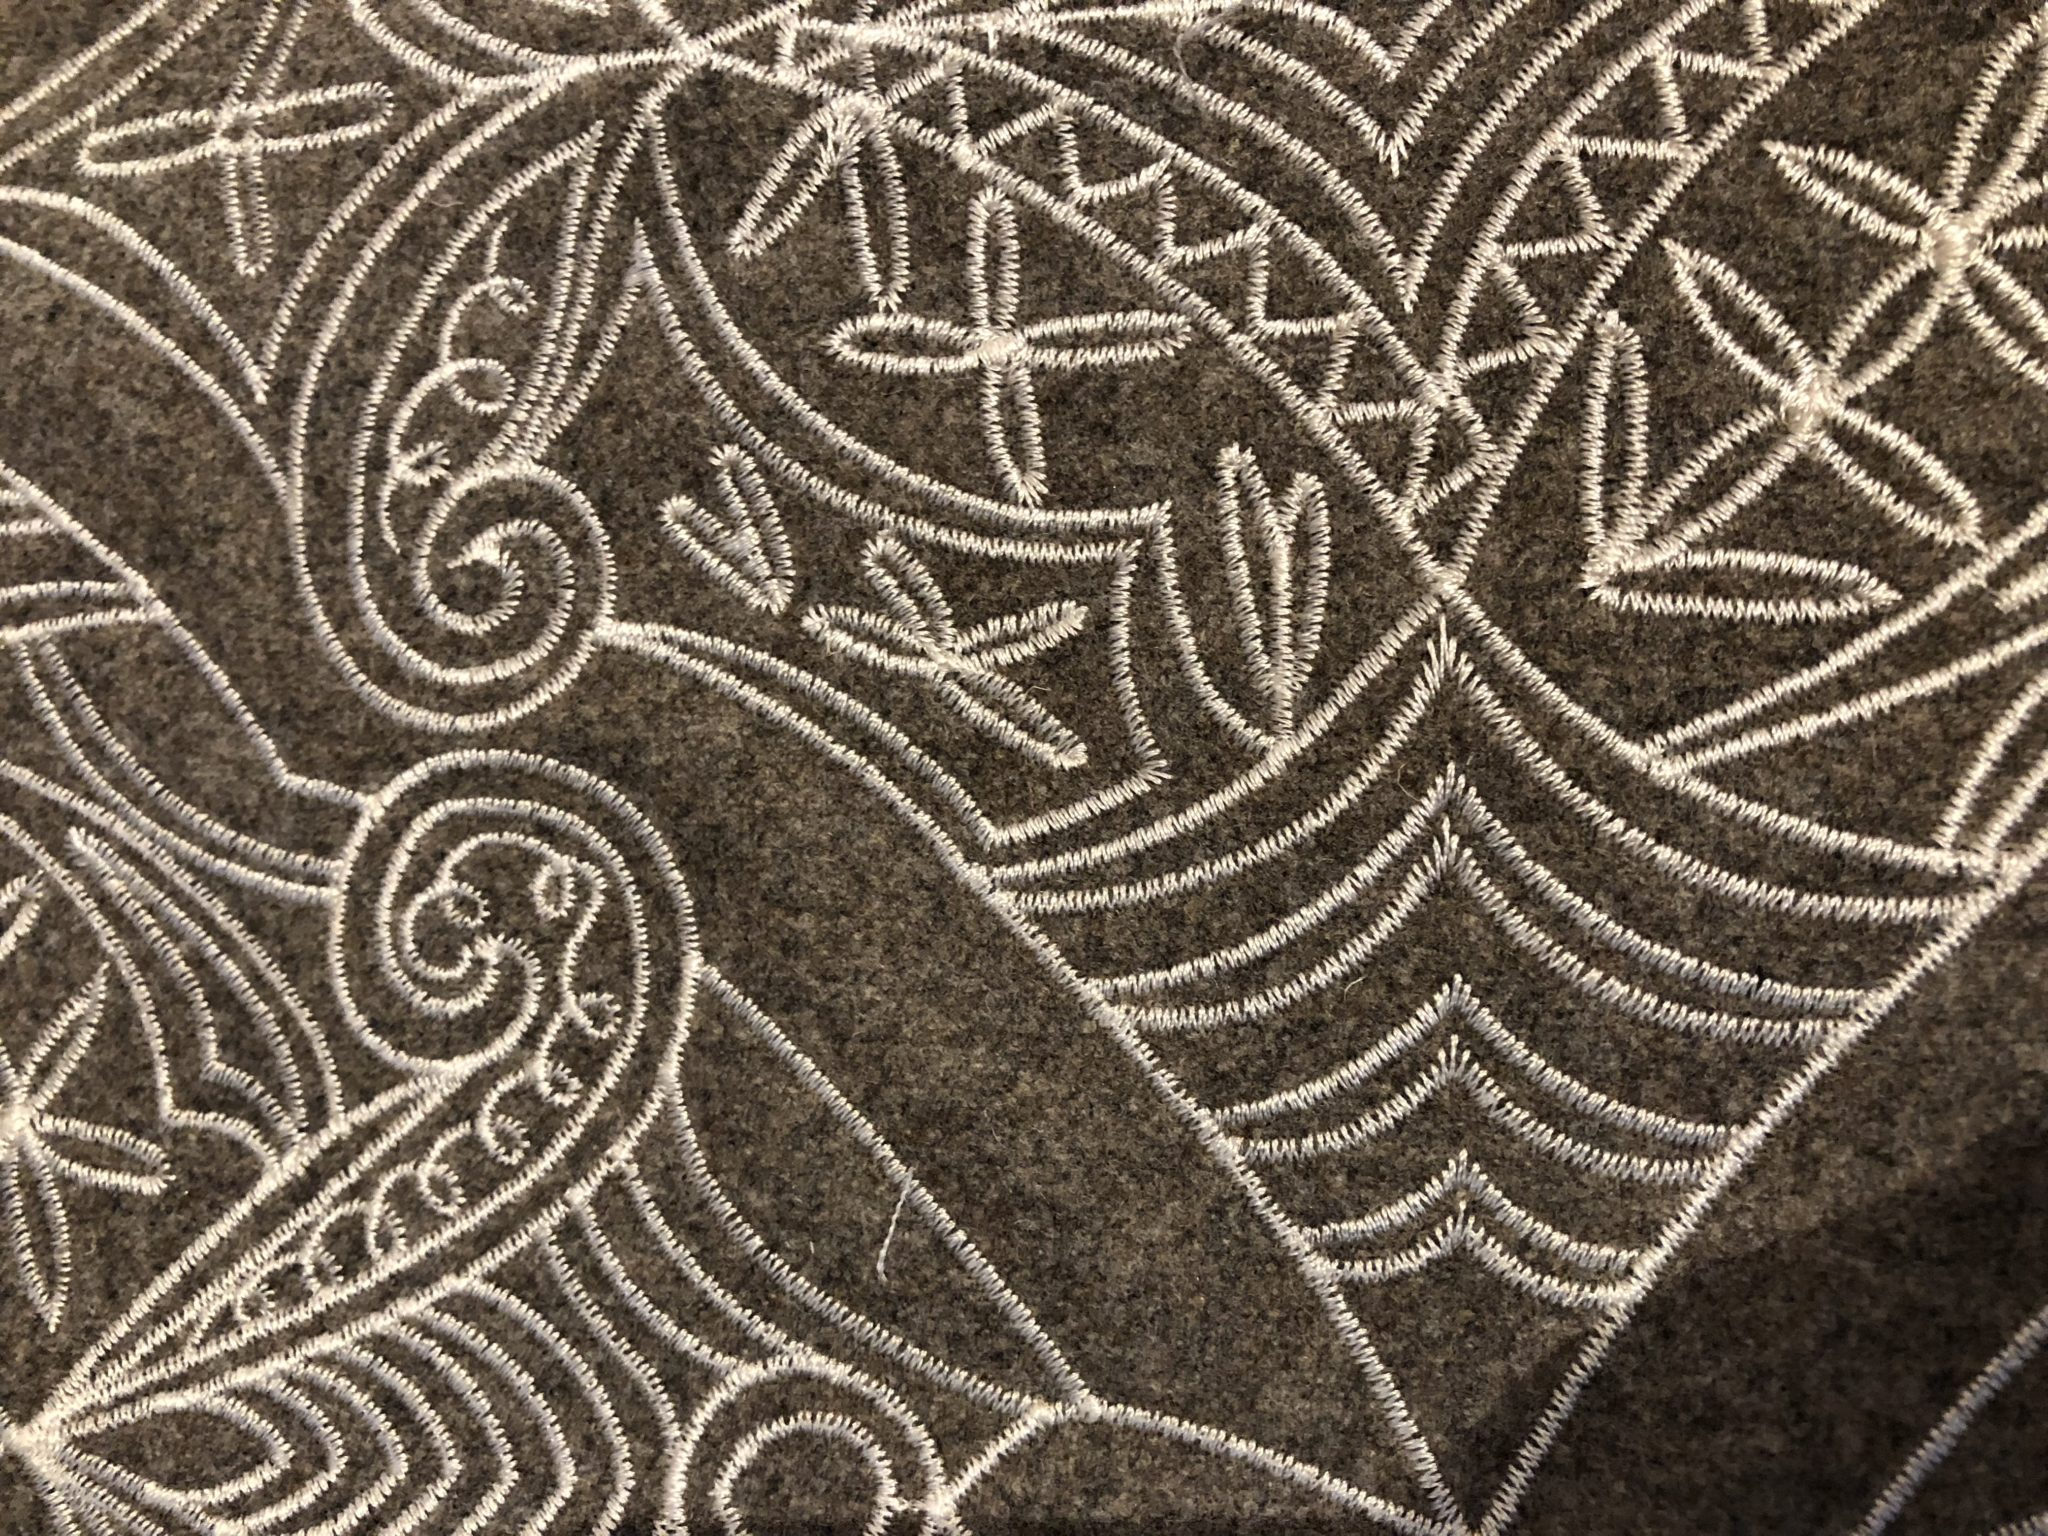 Detail of 'Coronation' (Buckwheat 02) from Brentano at Altfield